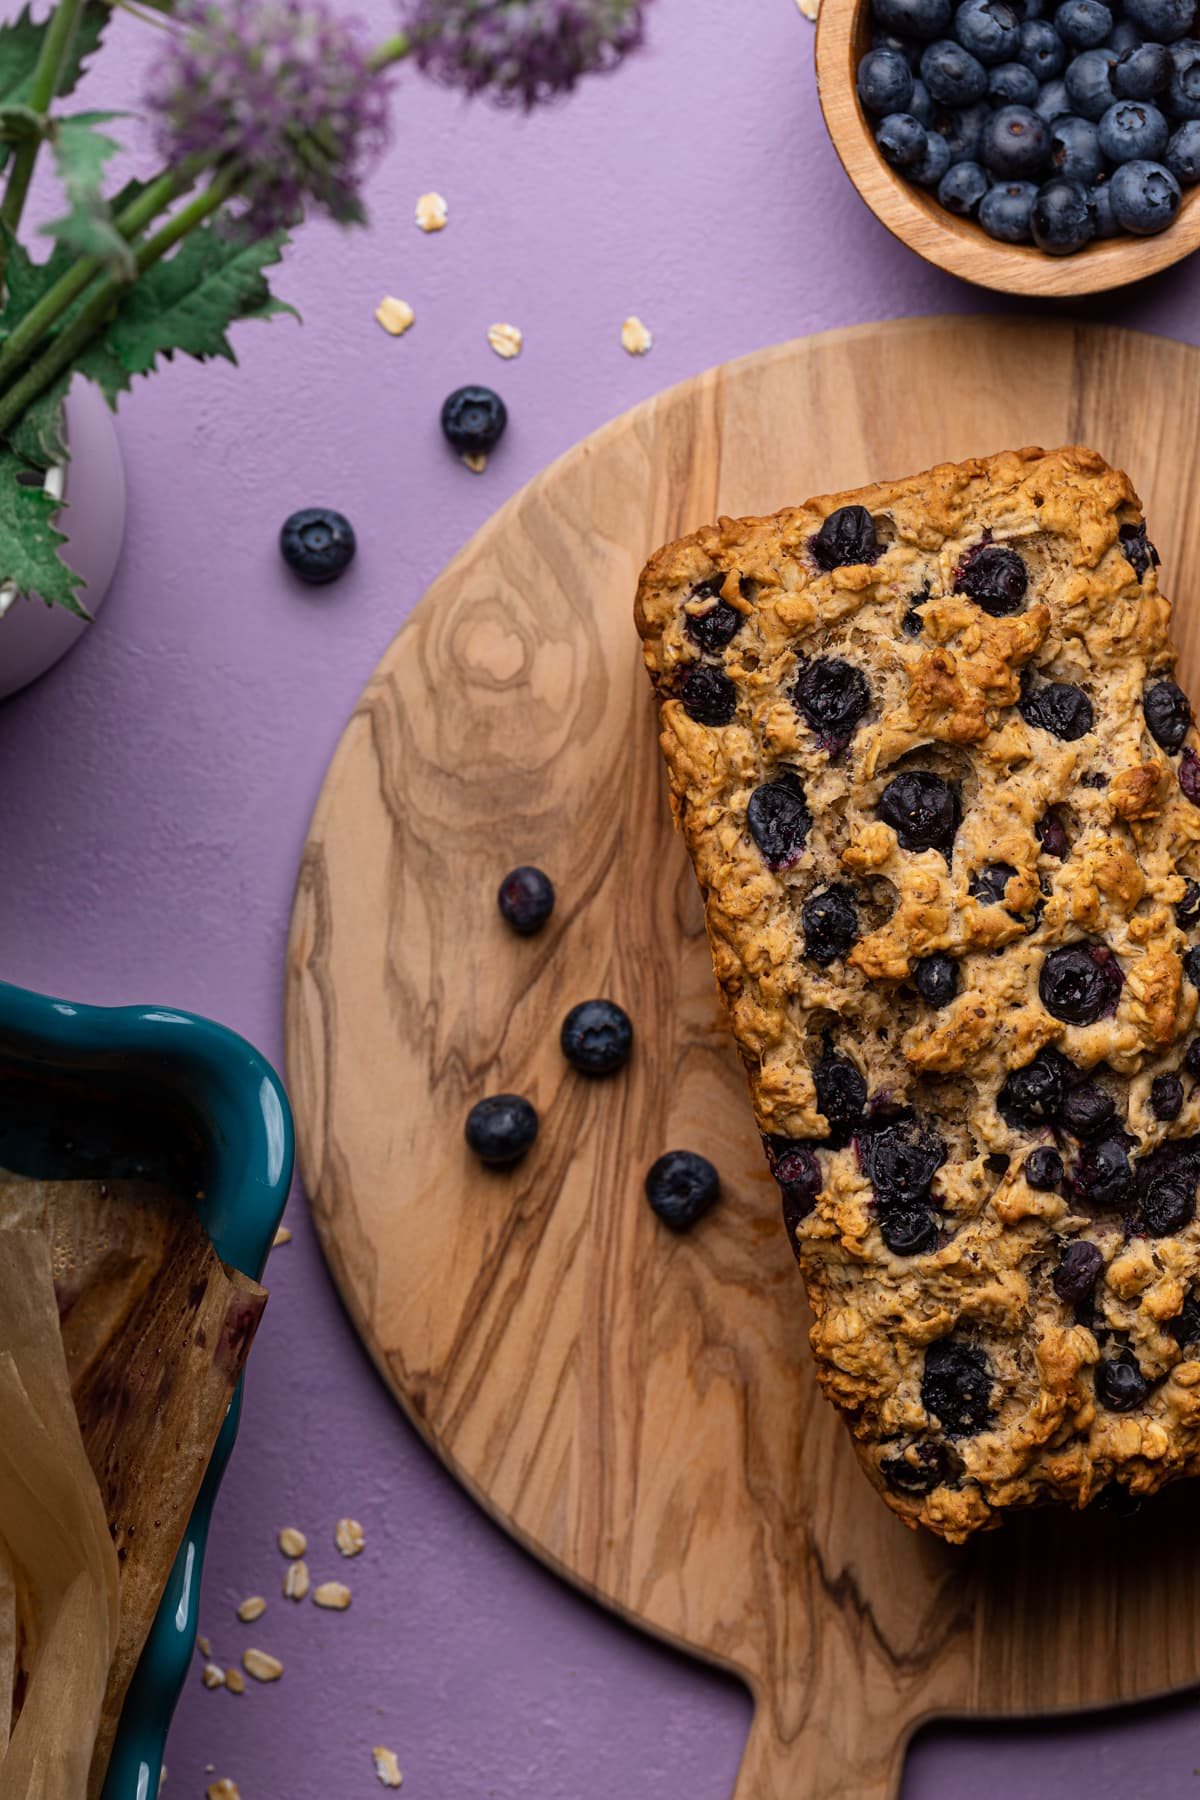 Healthy Blueberry Oatmeal Breakfast Bread with fresh berries on a cutting board